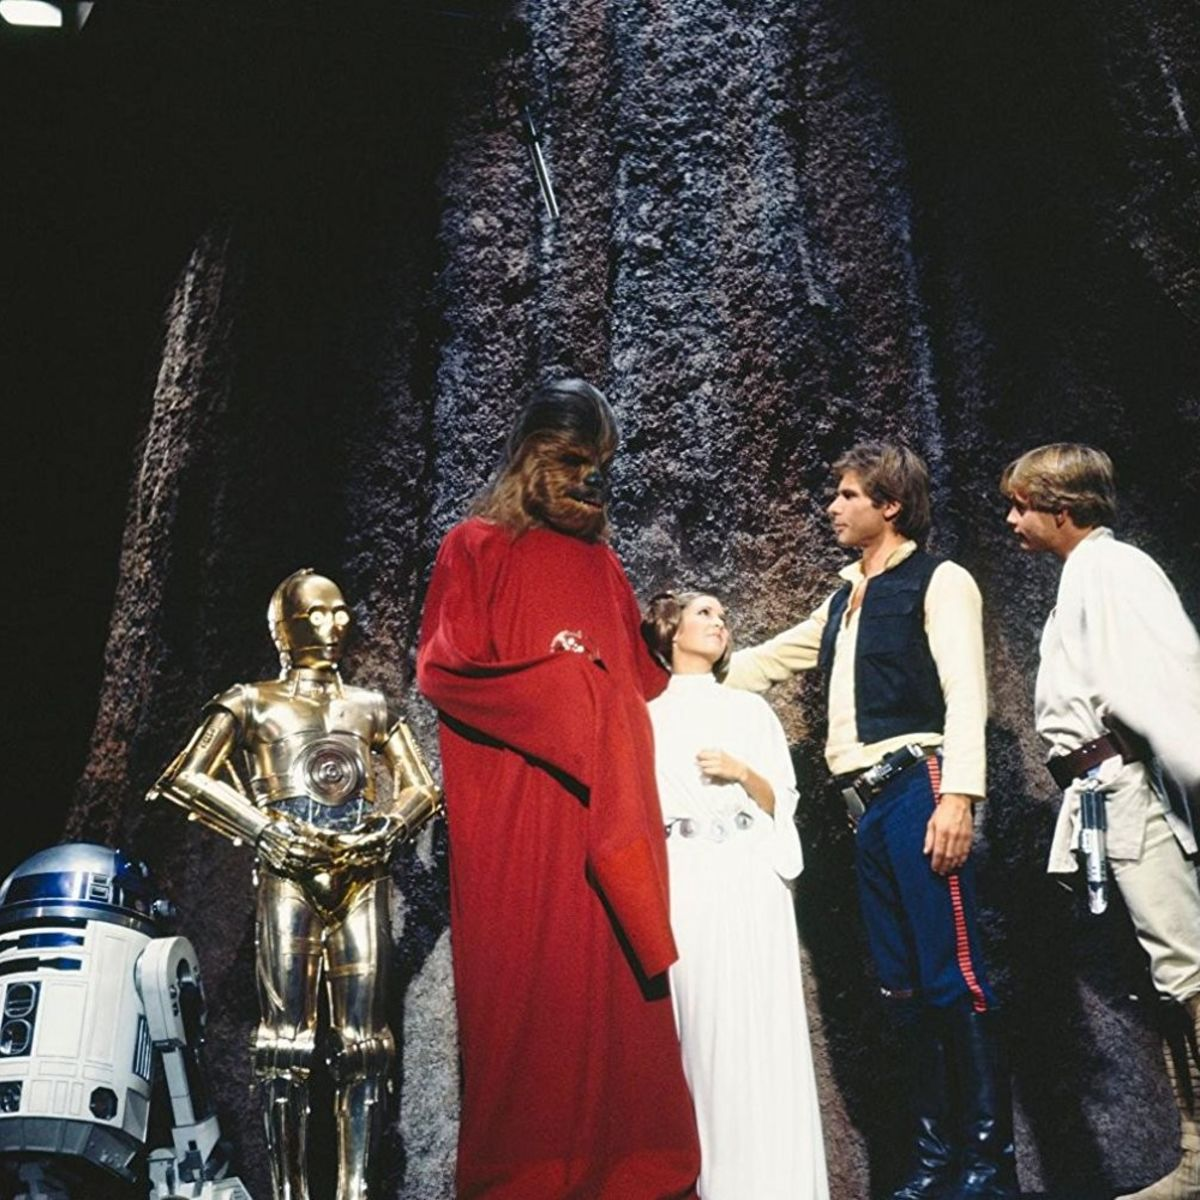 Star Wars Holiday Special cast